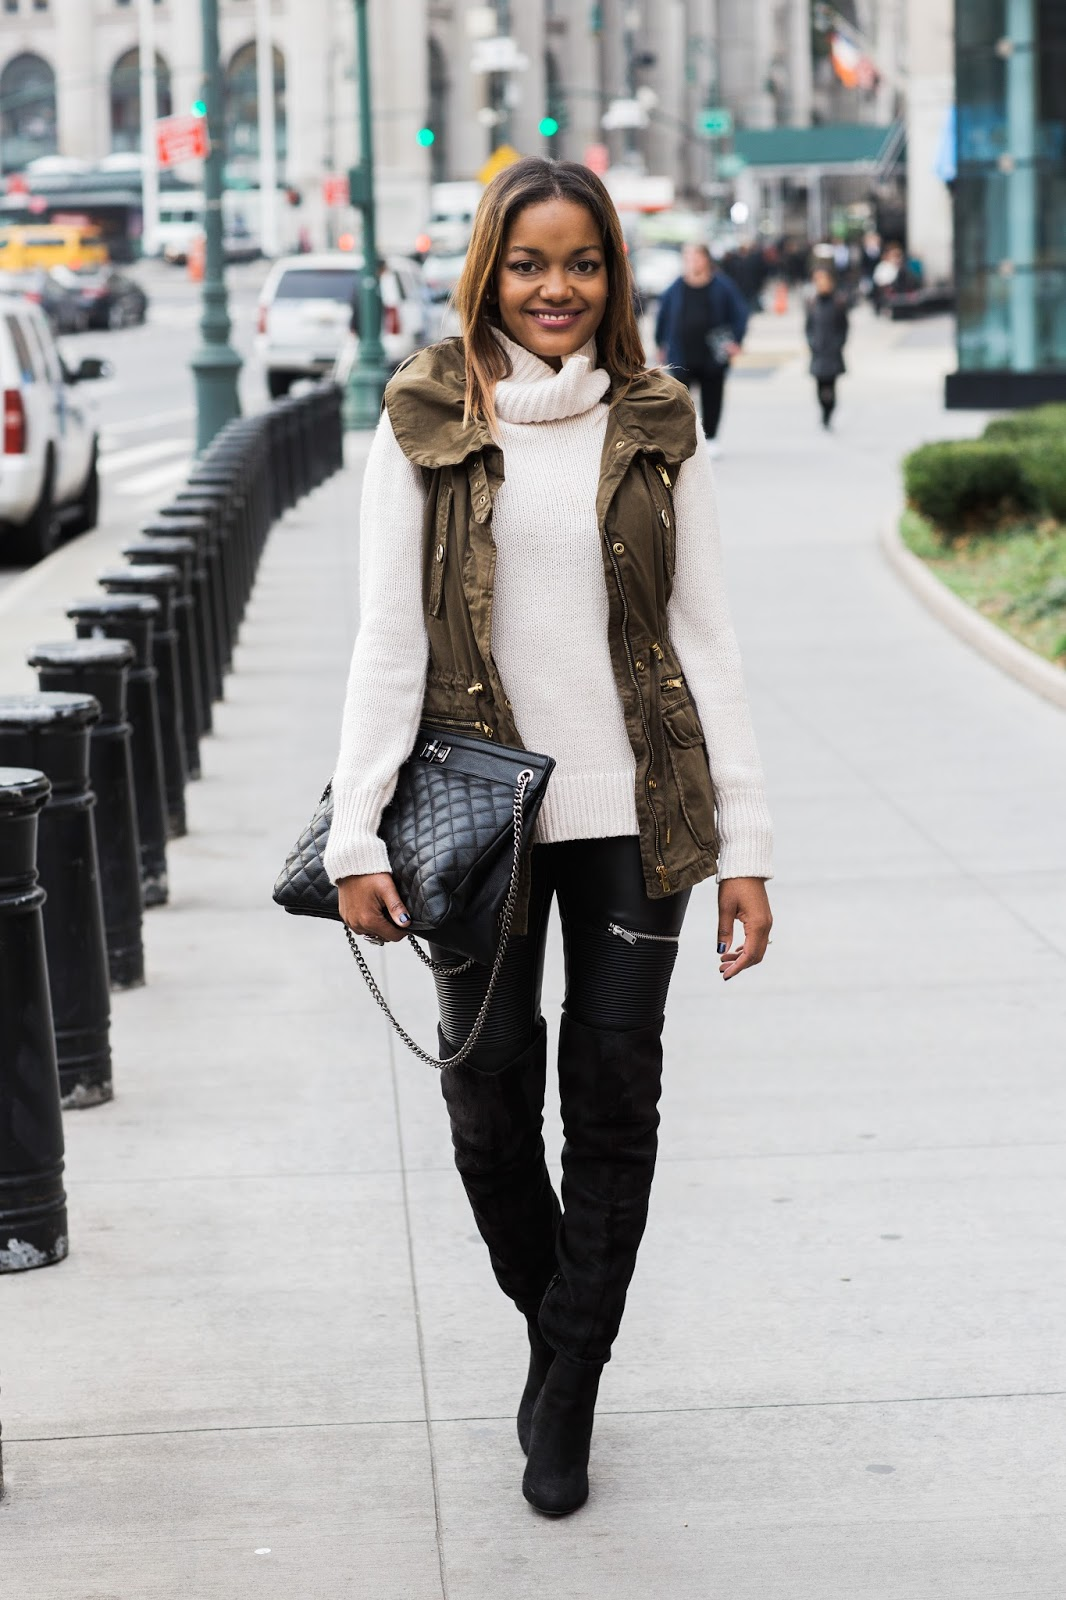 winter fashion, how to wear layers, nyc street style, dallas blogger, fashion blogger, black girl fashion blogger, detroit blogger, otk boots, justfab otk boots, quilted handbag, chanel style bag, chanel look for less,